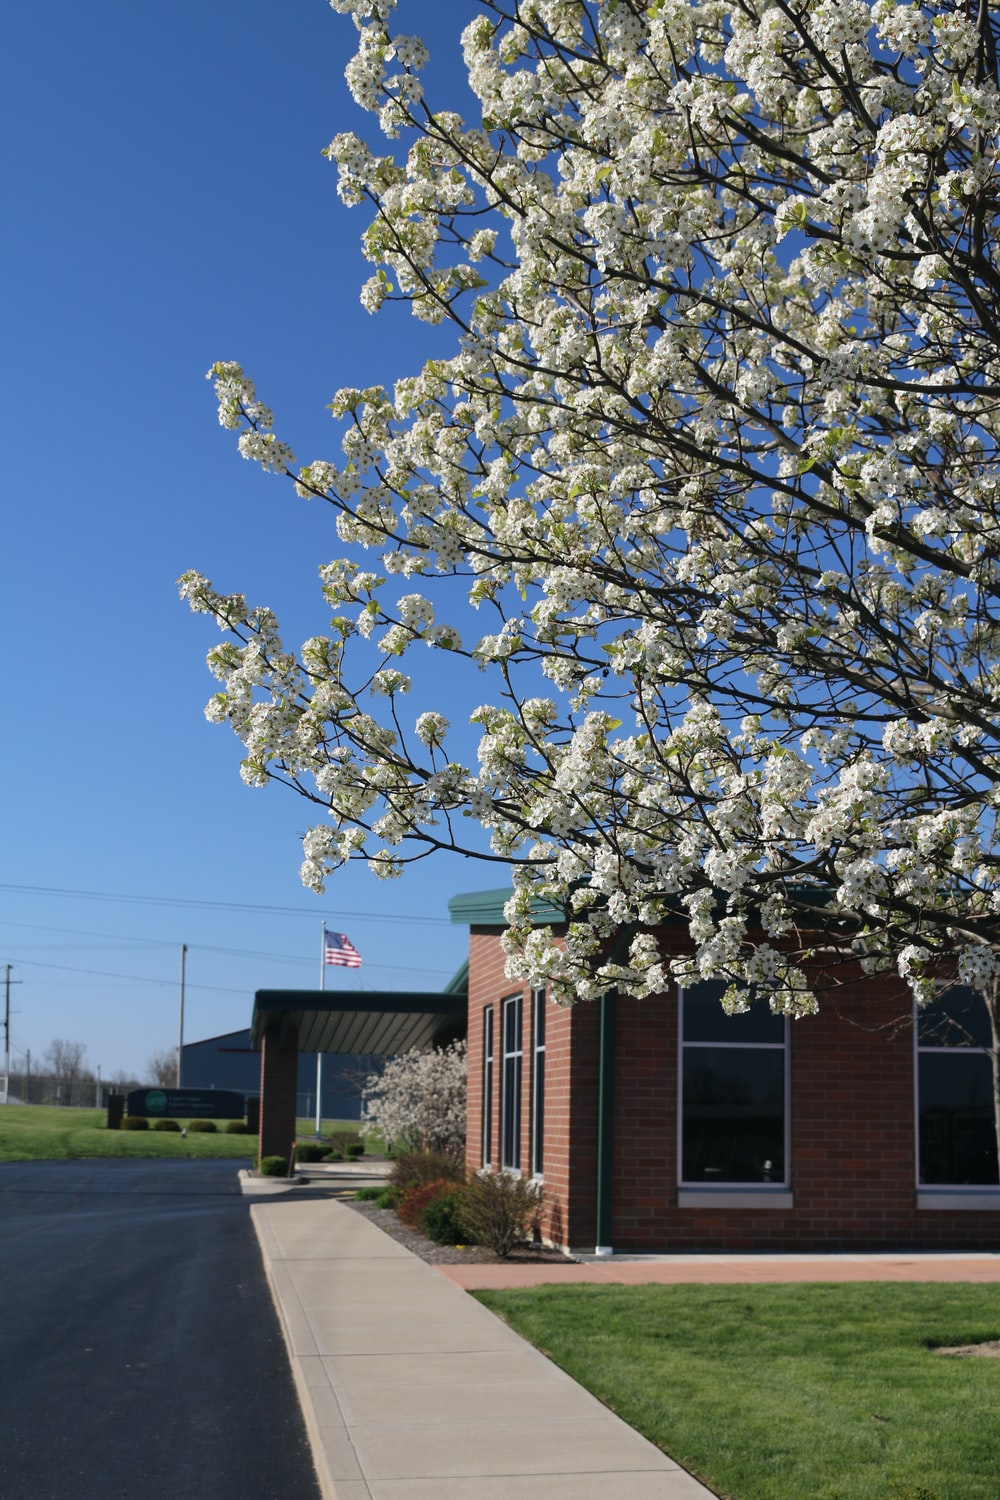 white cherry blossom tree near brown building during daytime